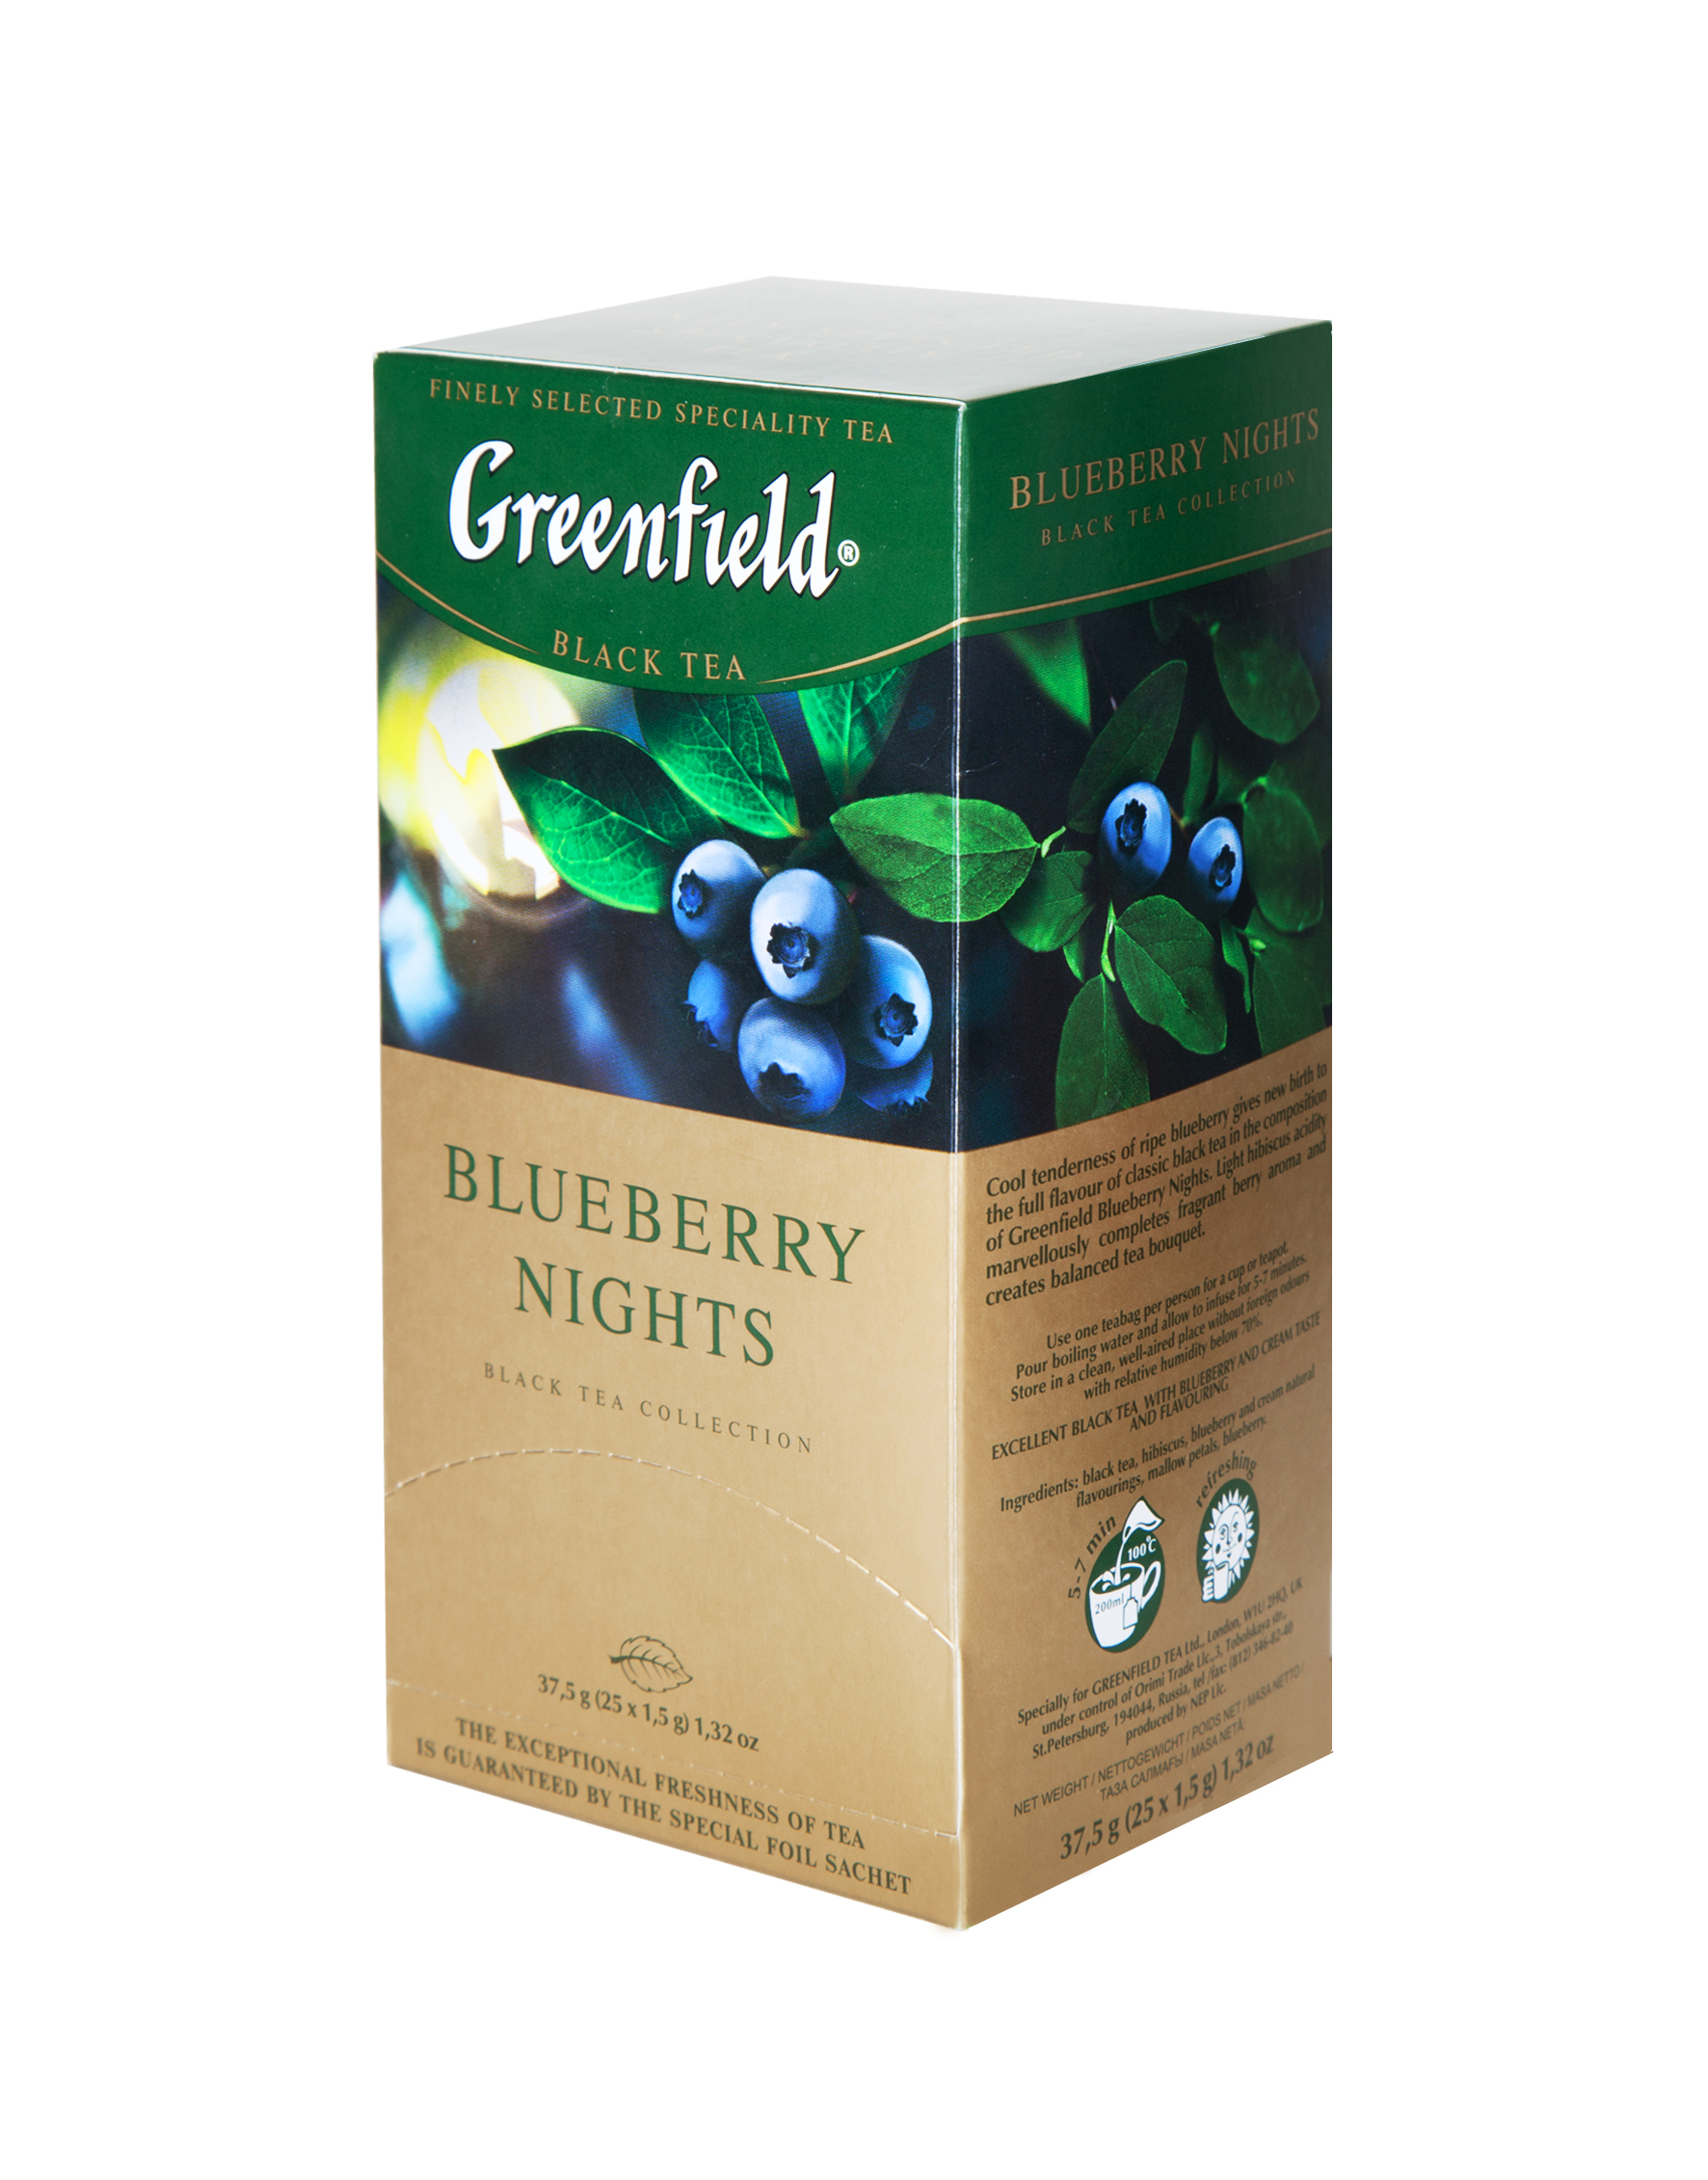 Blueberry night Greenfield